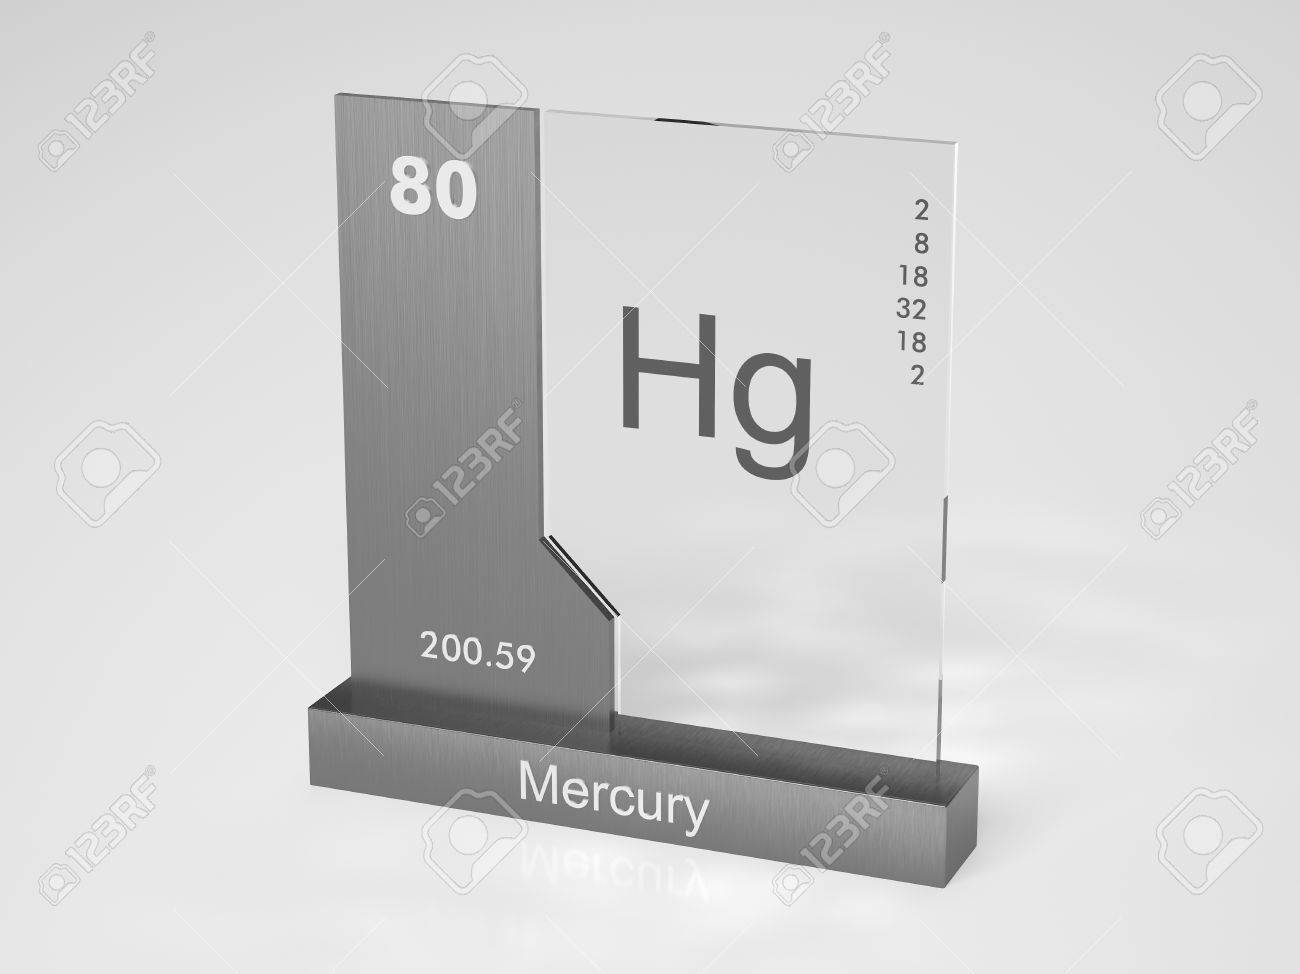 Periodic table gold symbol choice image periodic table images mercury symbol hg chemical element of the periodic table stock mercury symbol hg chemical element of gamestrikefo Image collections